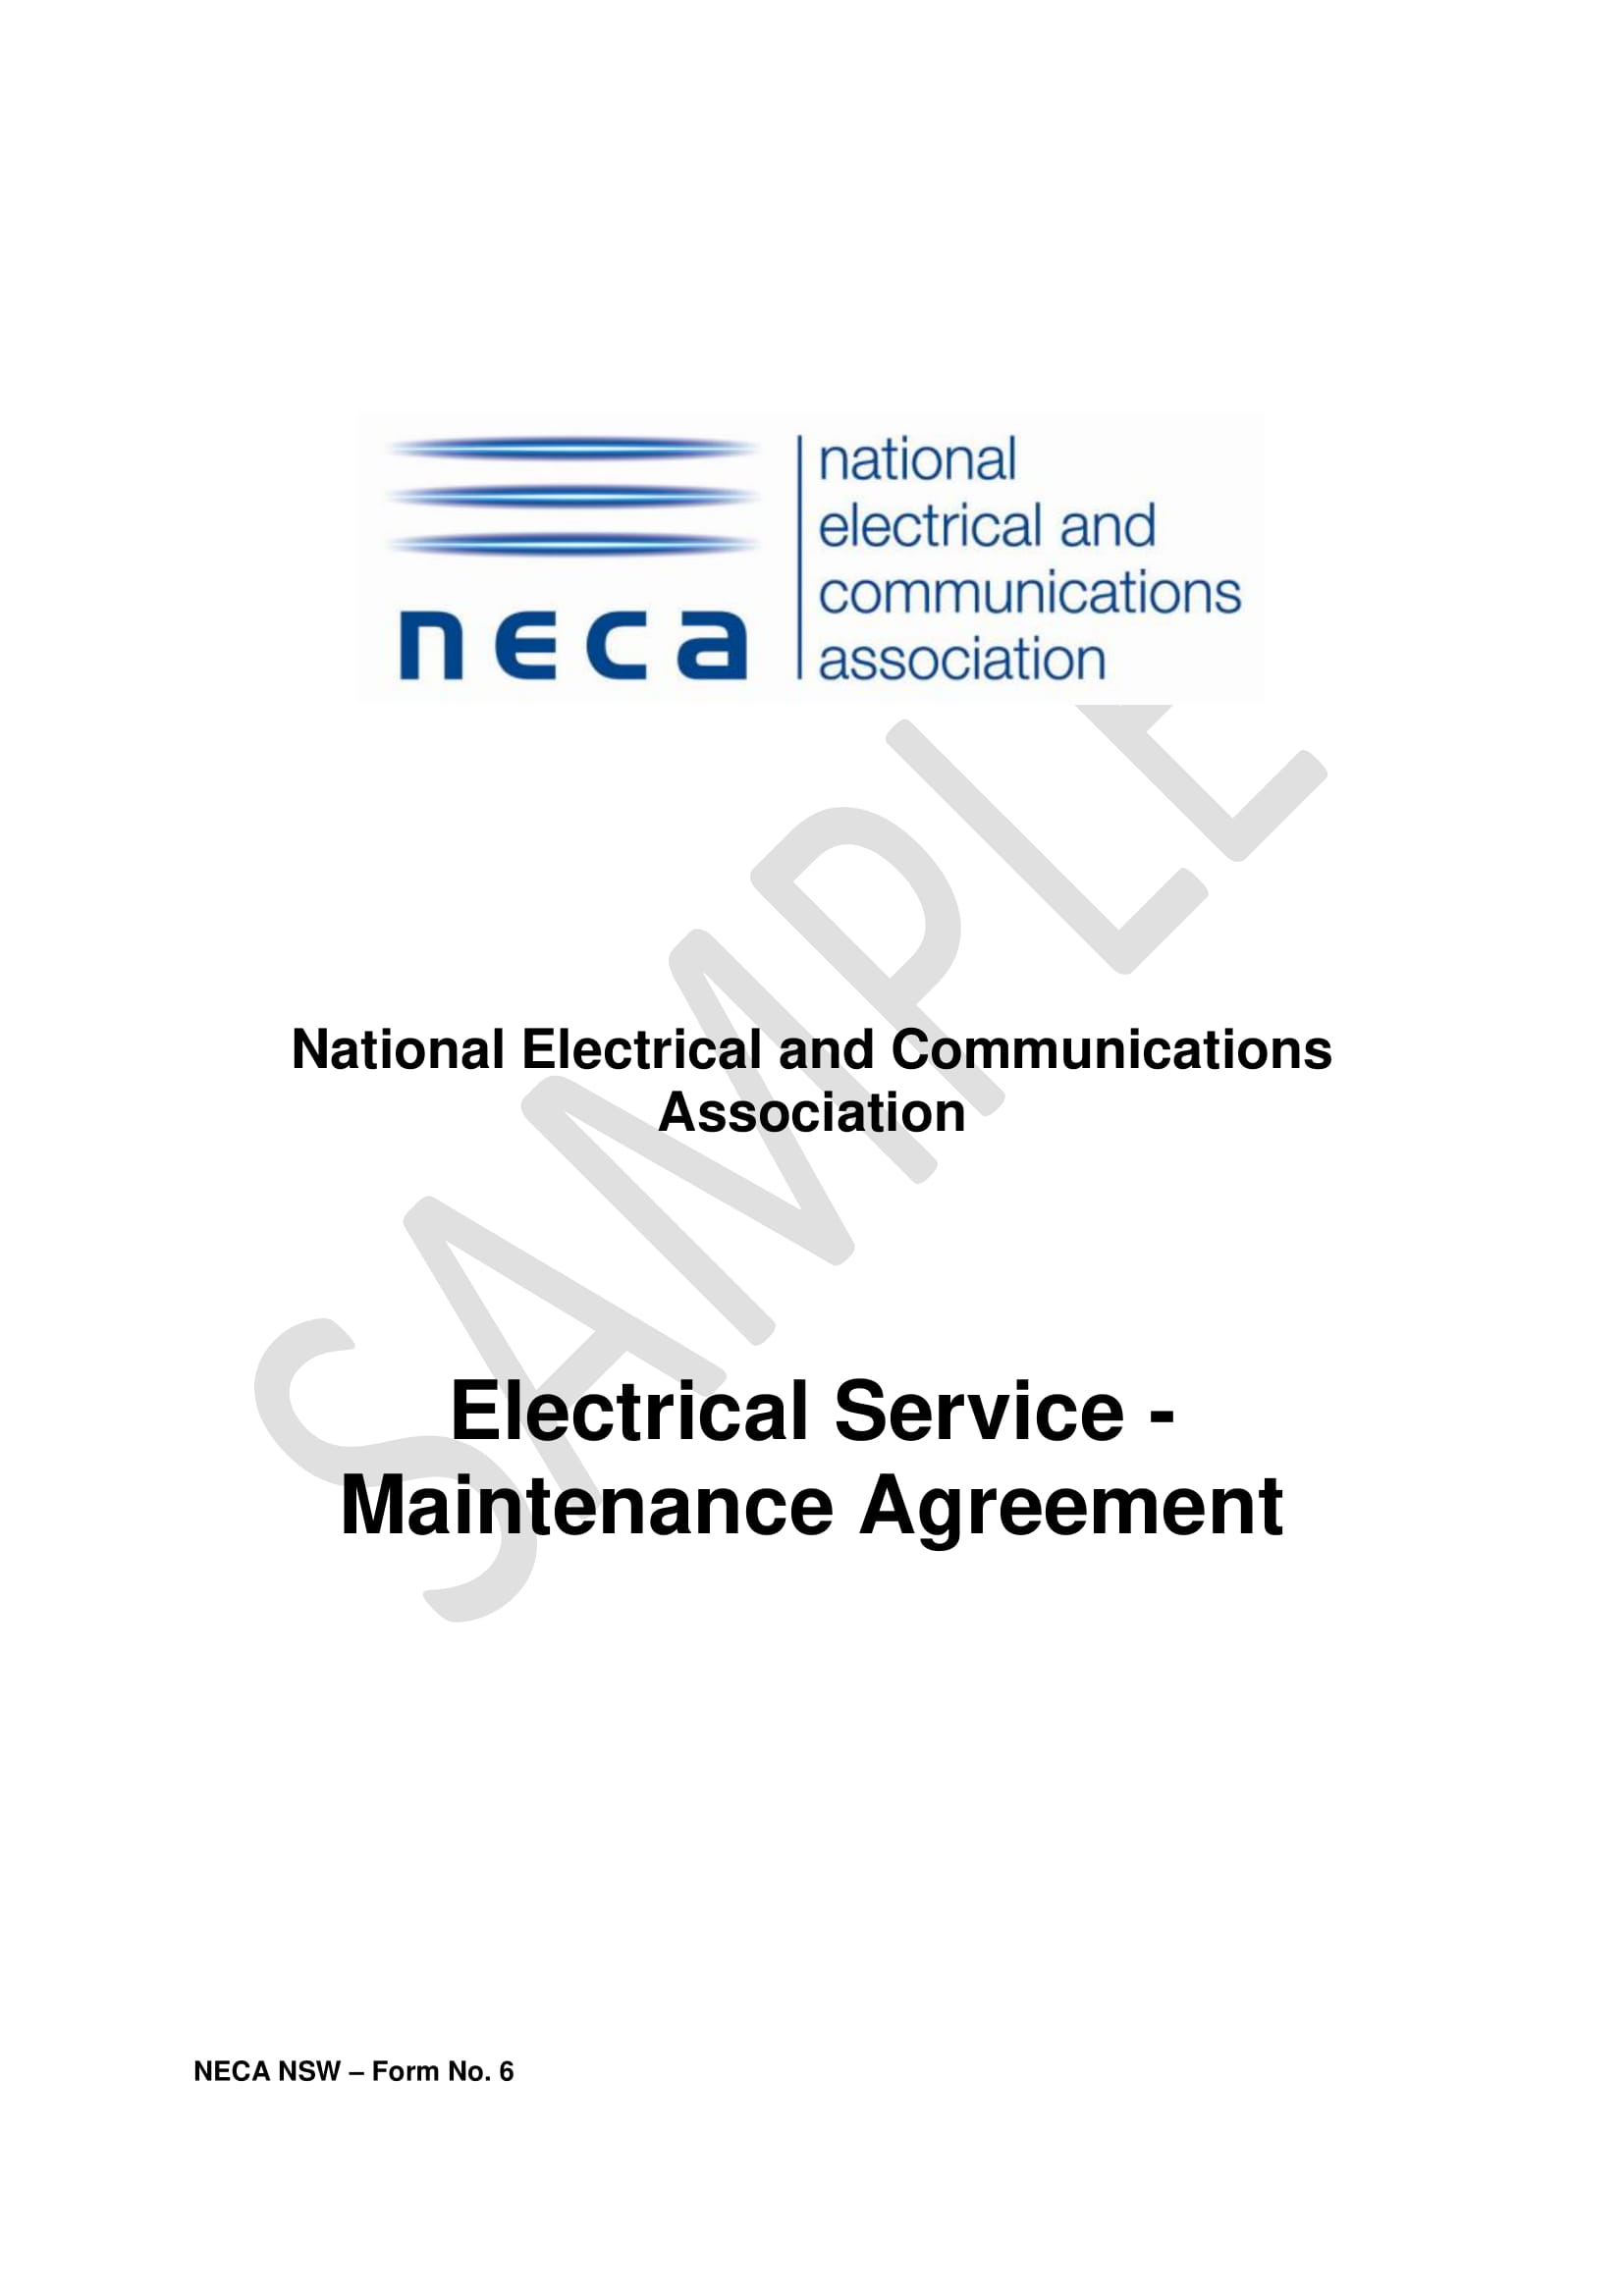 electrical service maintenance agreement contract template example 1